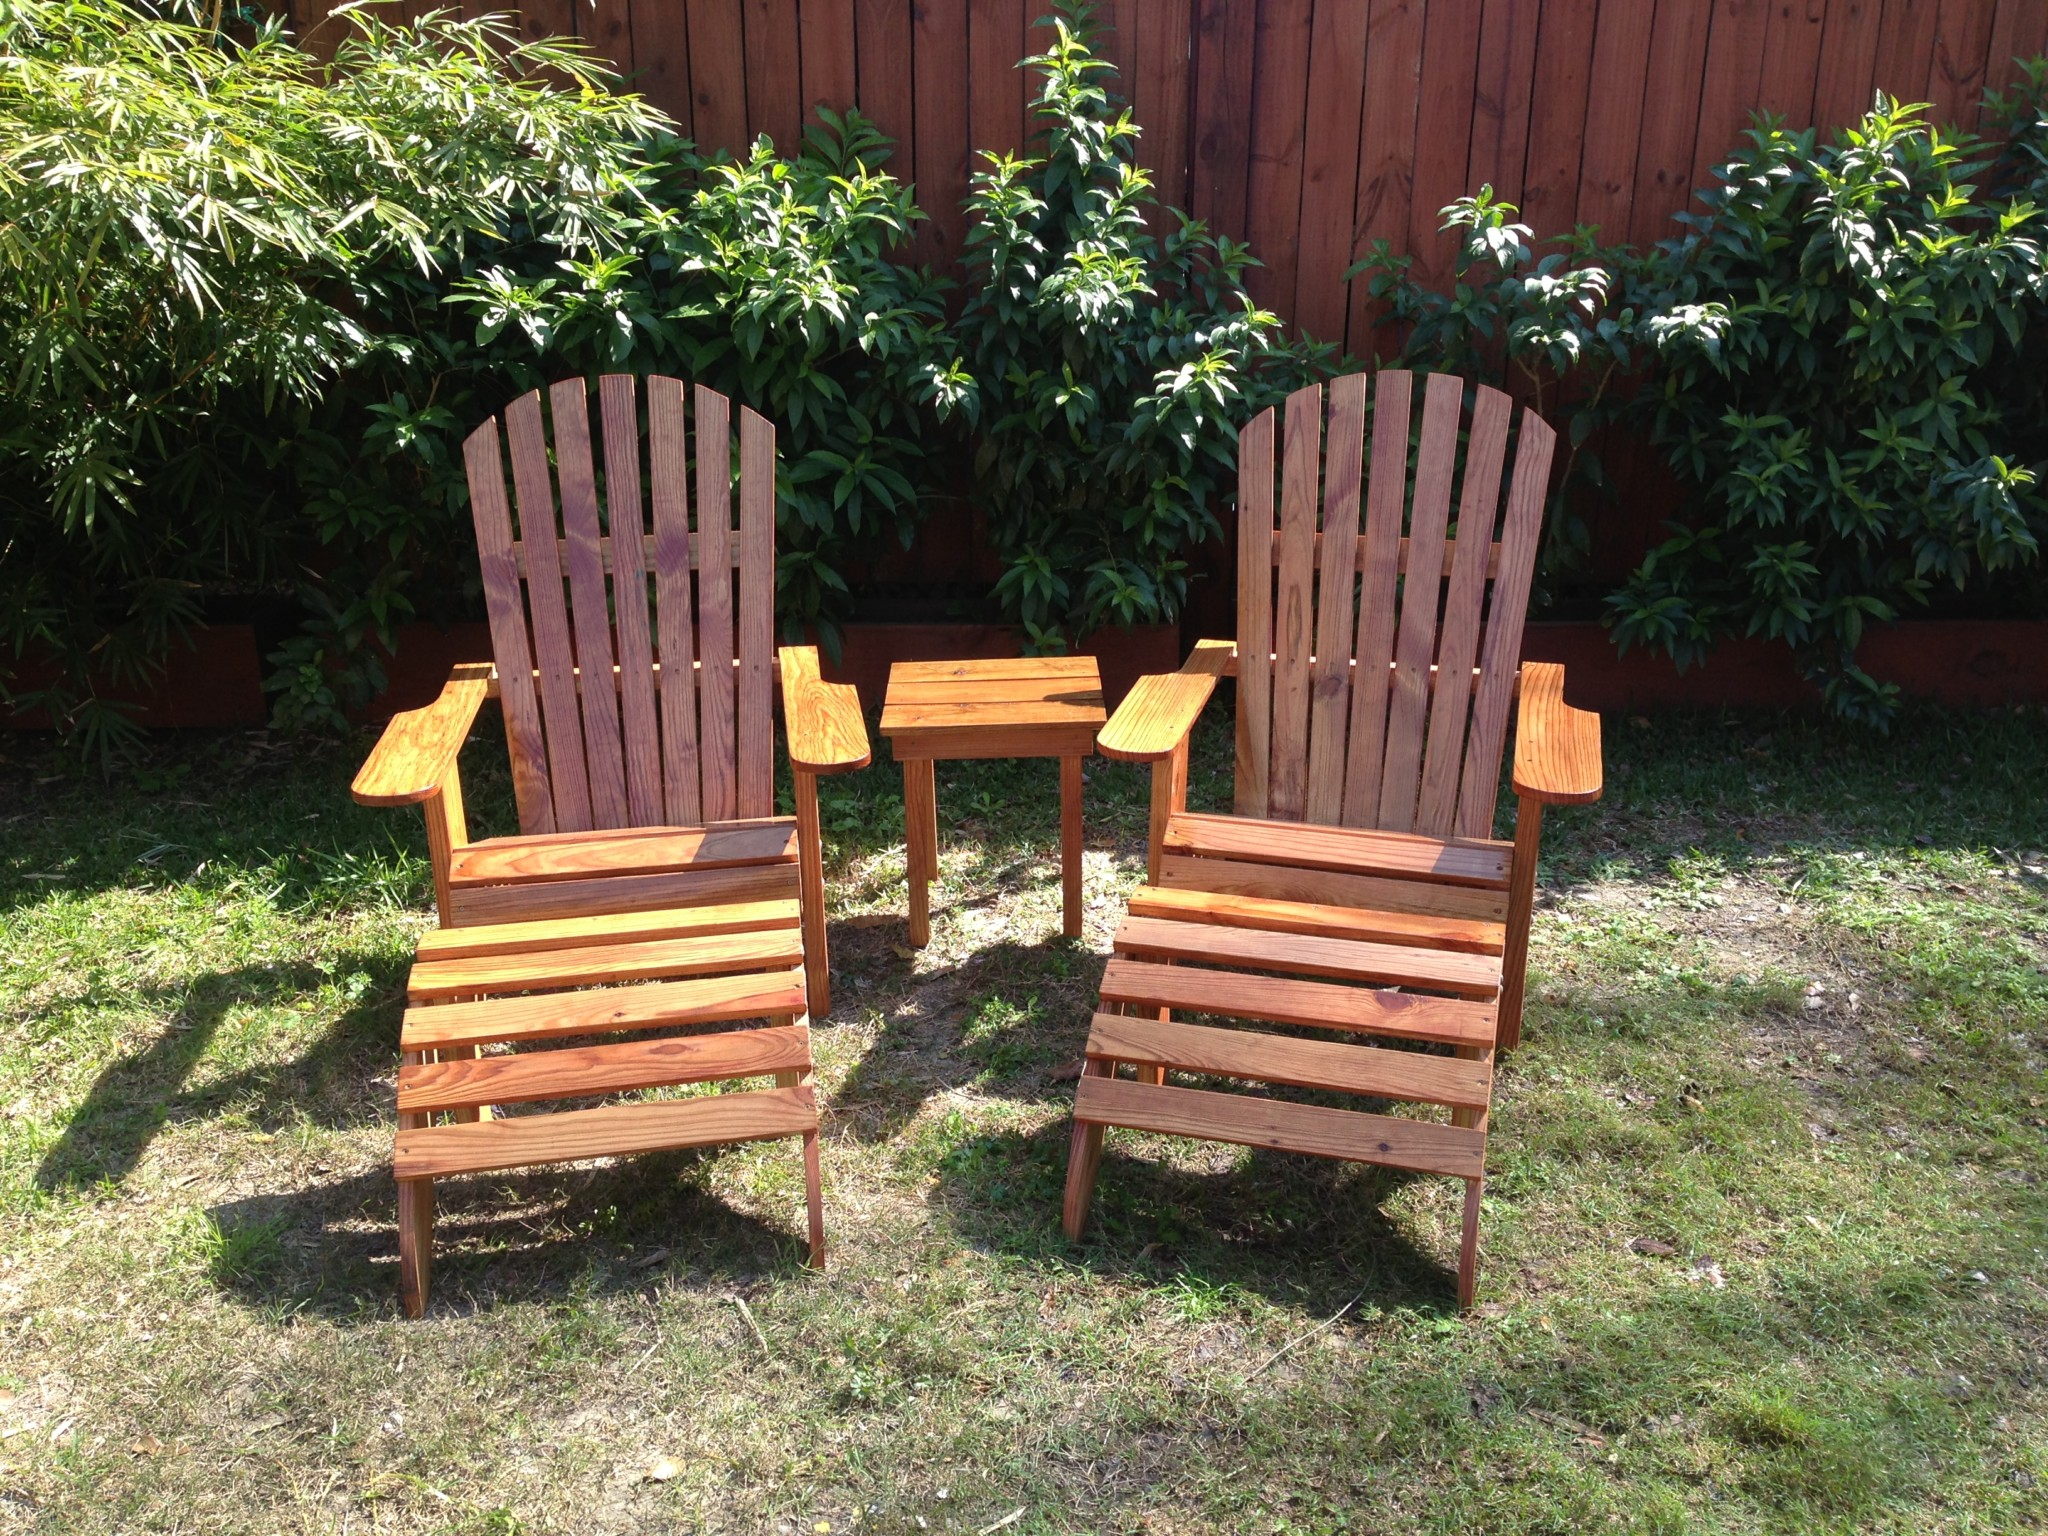 unfinished ottoman resistant p weather chair adirondack set chairs fir wood and c htm